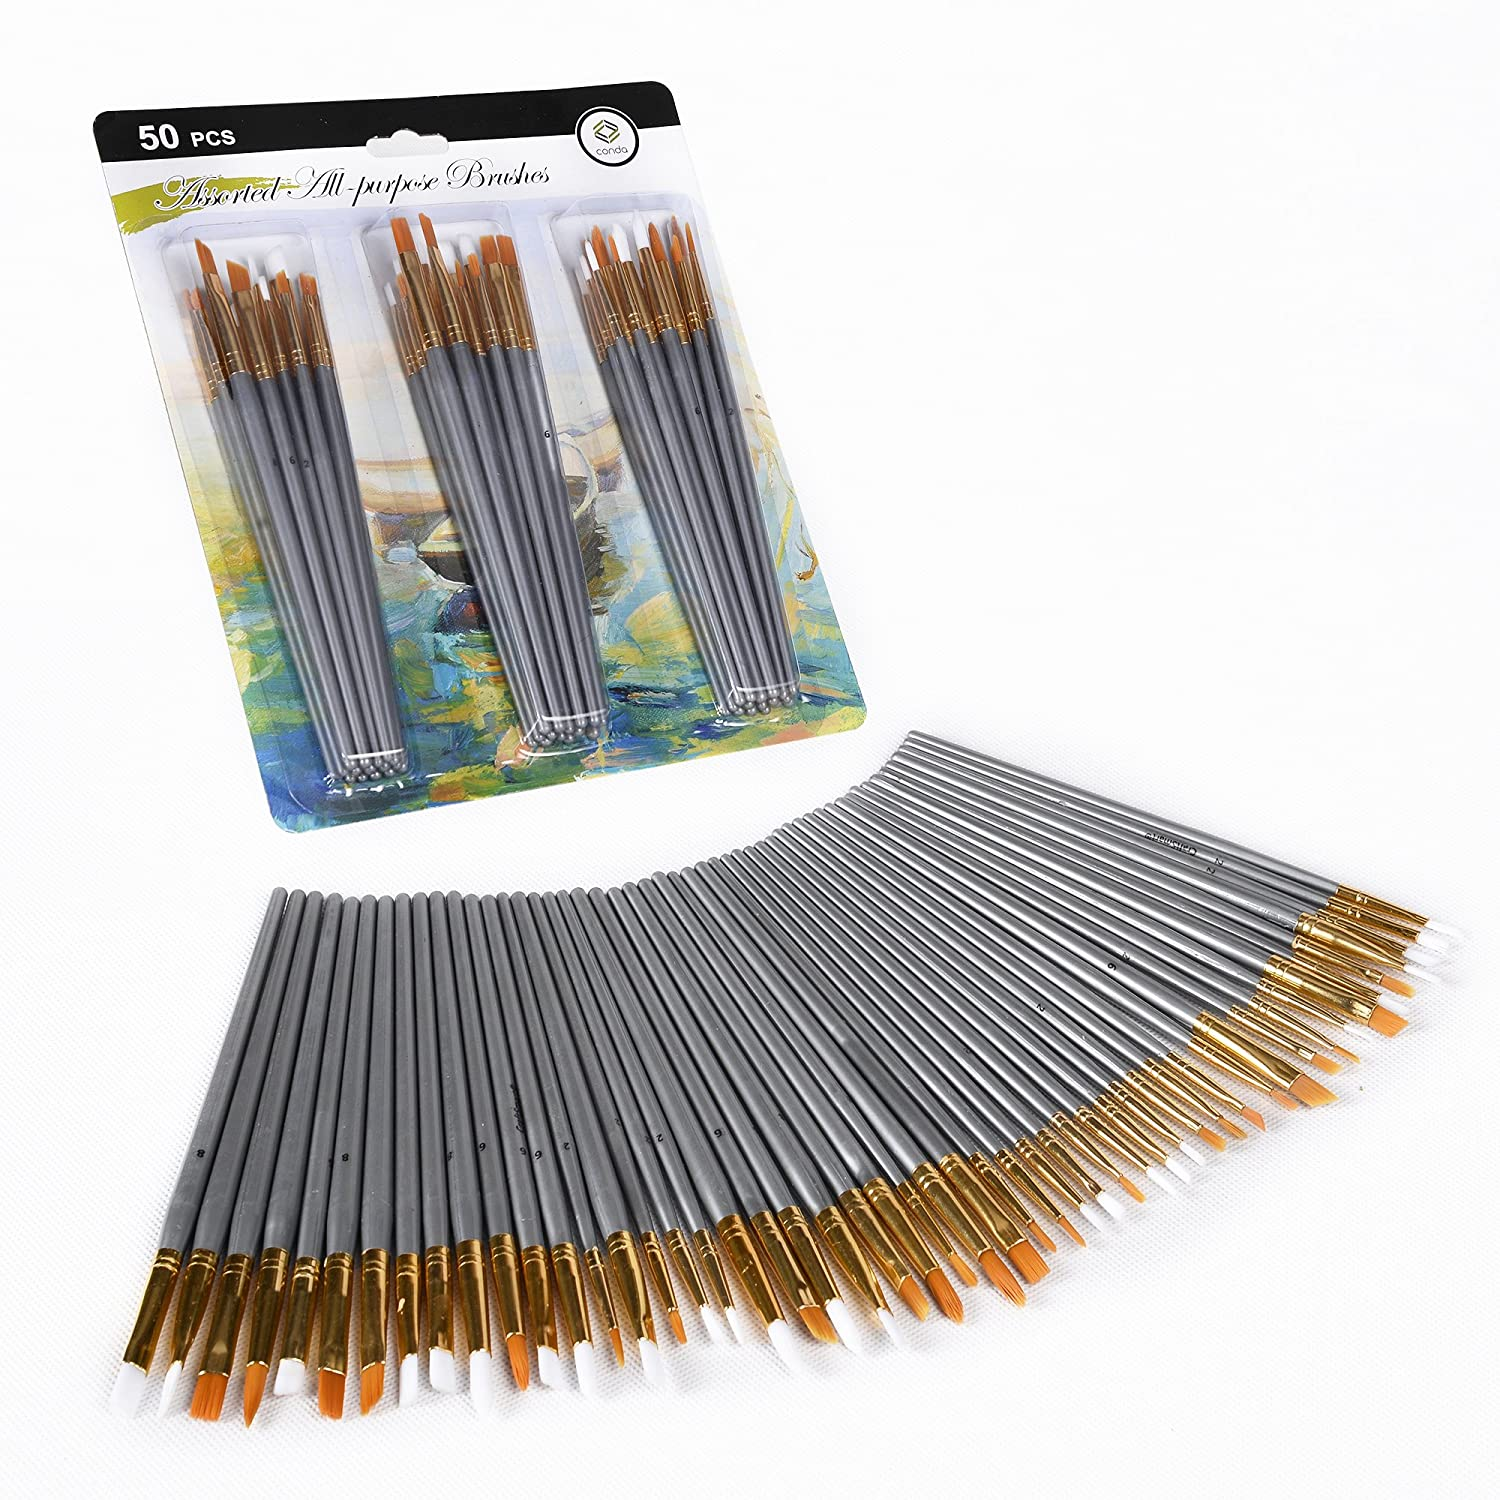 CONDA 50 pcs Assorted All- Purpose Paint Brush Set for Acrylic, Oil, Watercolors 4336960695